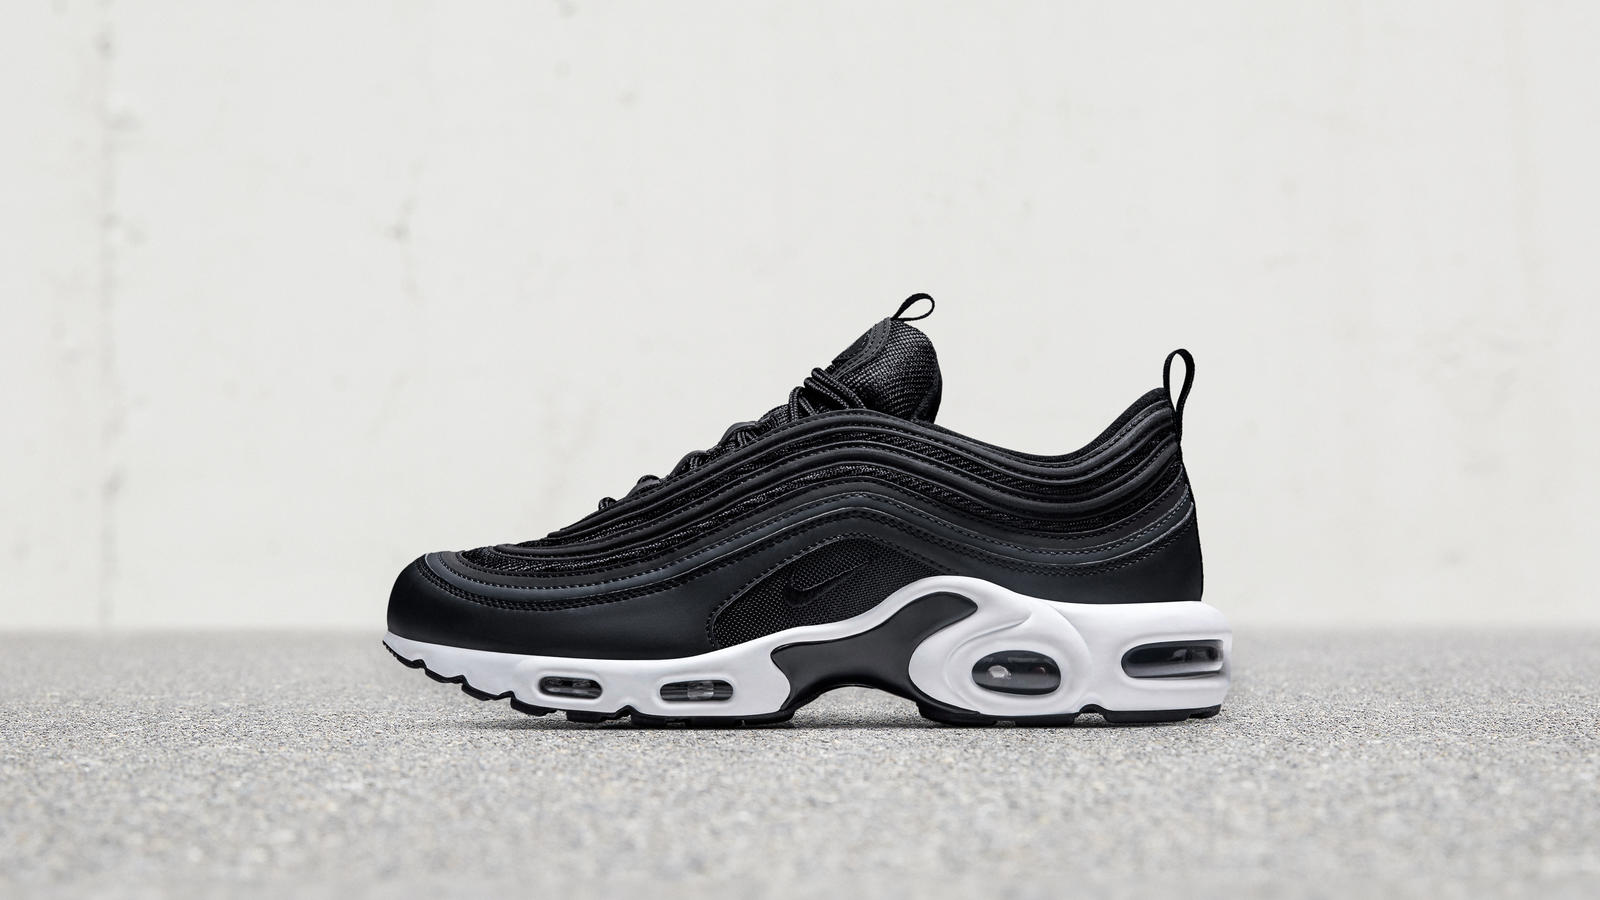 a6951cad302c Nike Air Max Plus   97 - Nike News